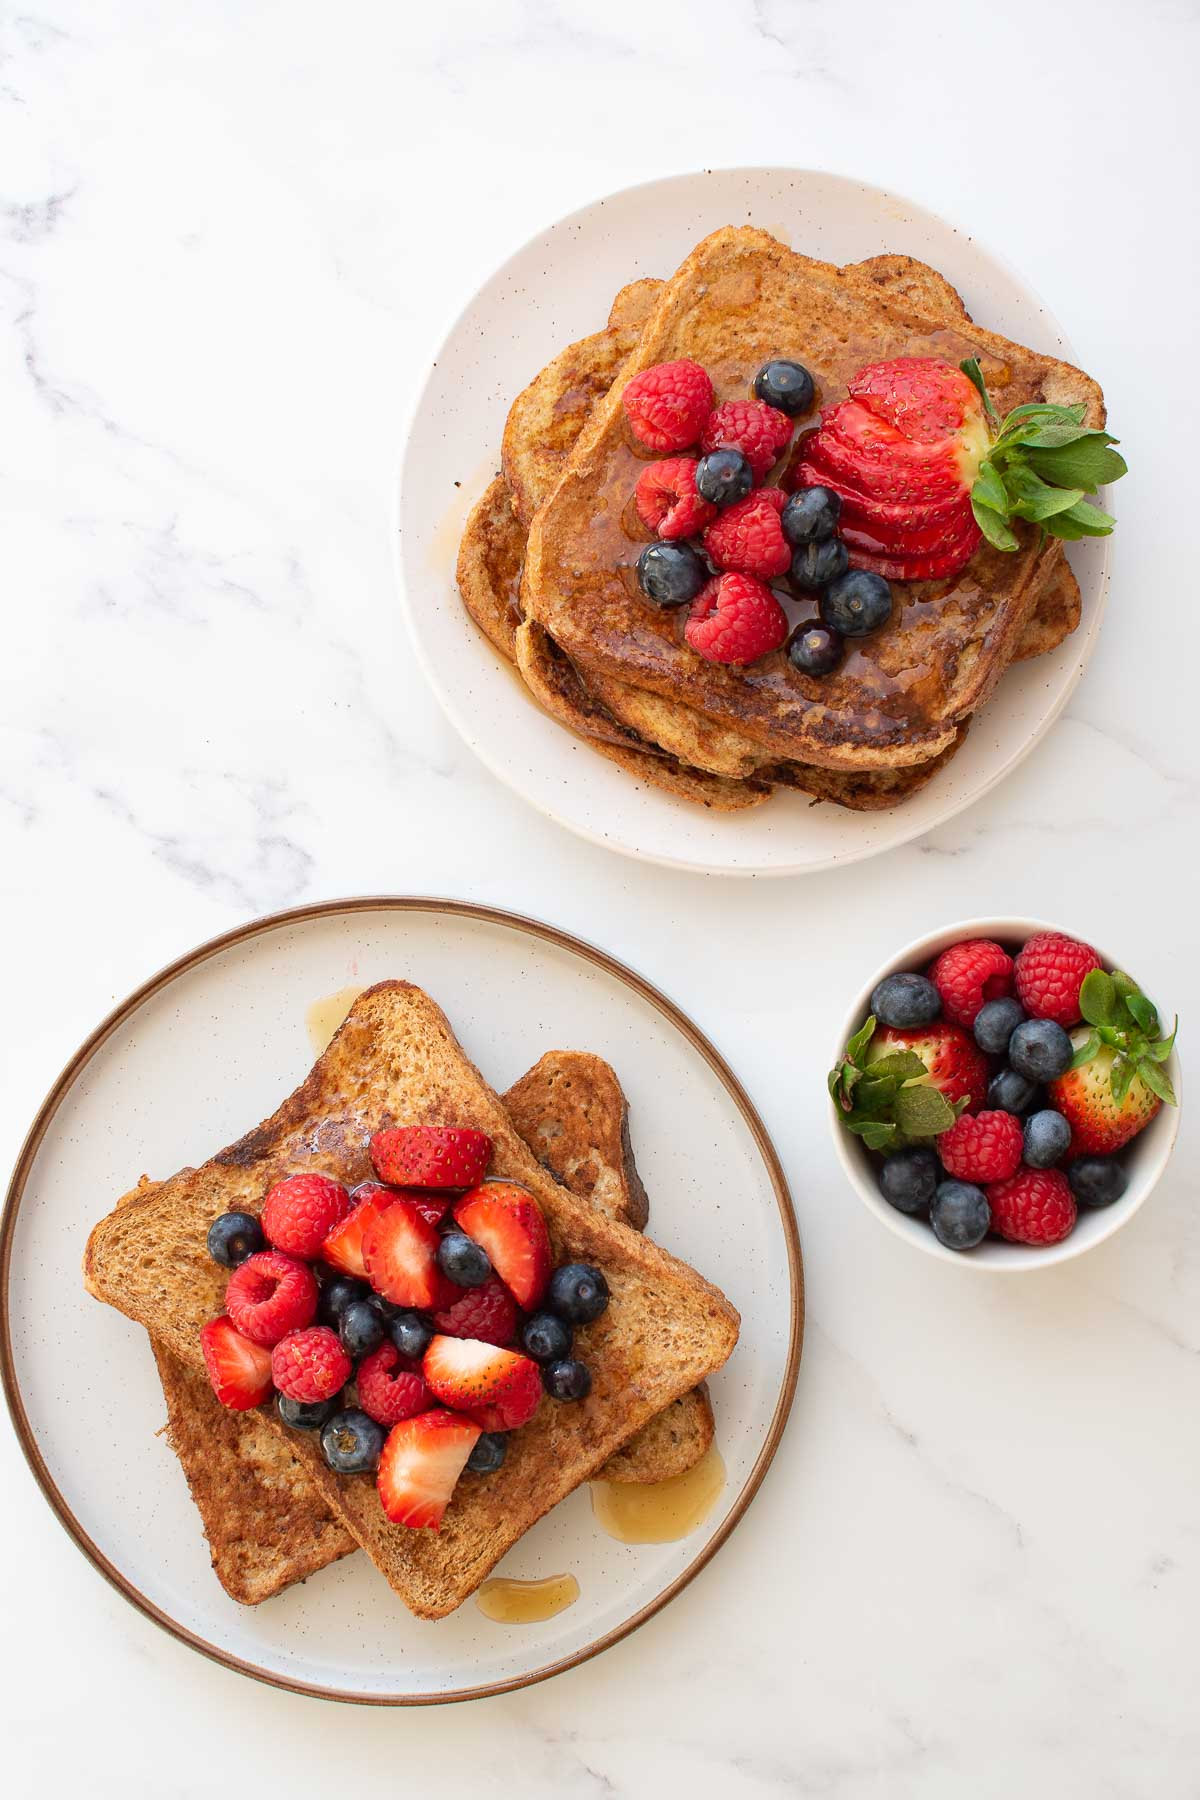 Two plates of French toast with berries.